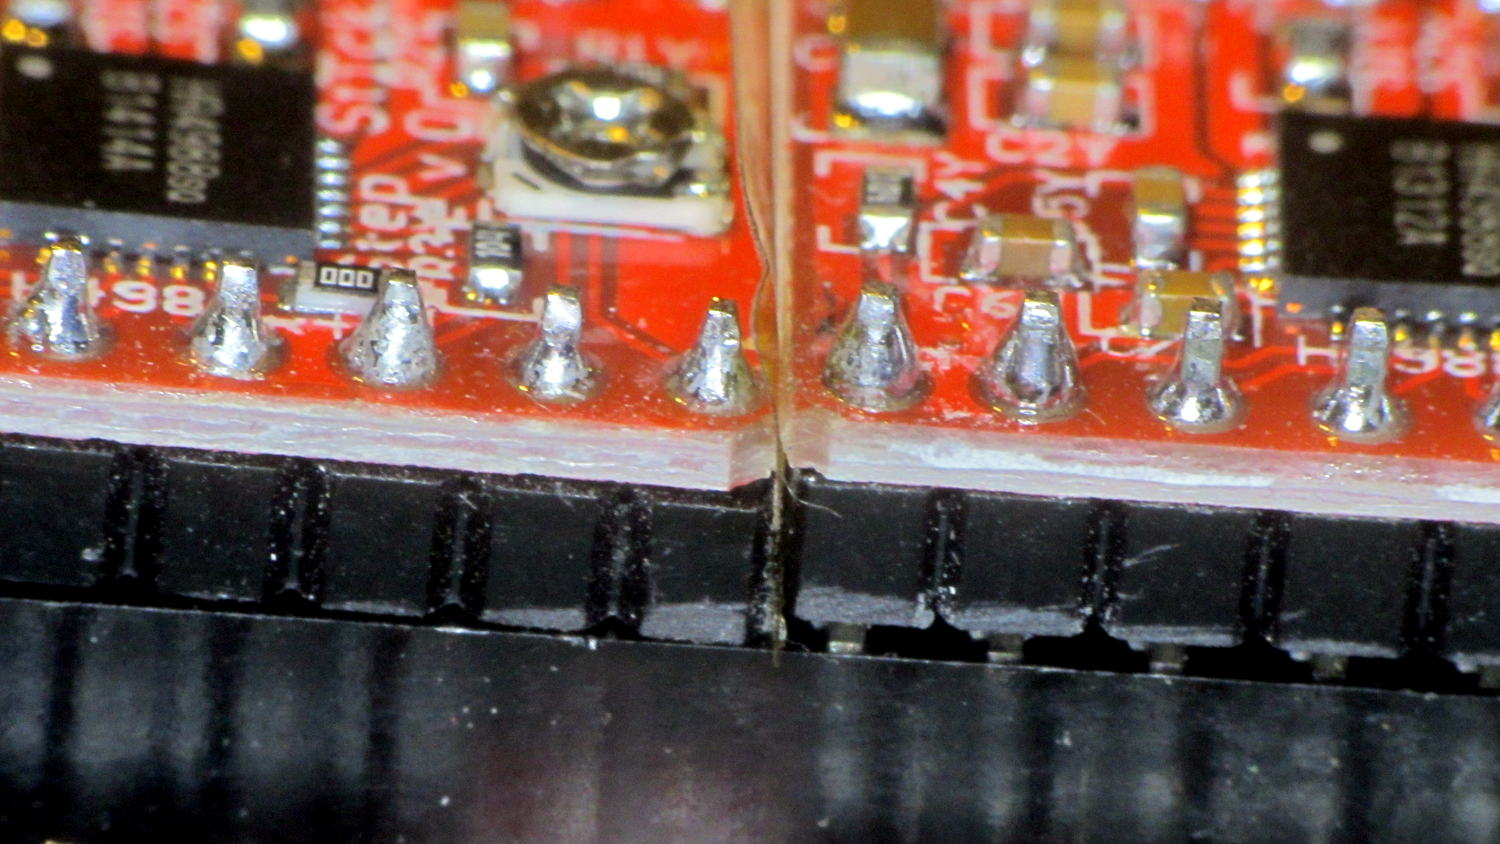 Ramps 14 Heatsinking The Smell Of Molten Projects In Morning Board Stepper Driver Fit